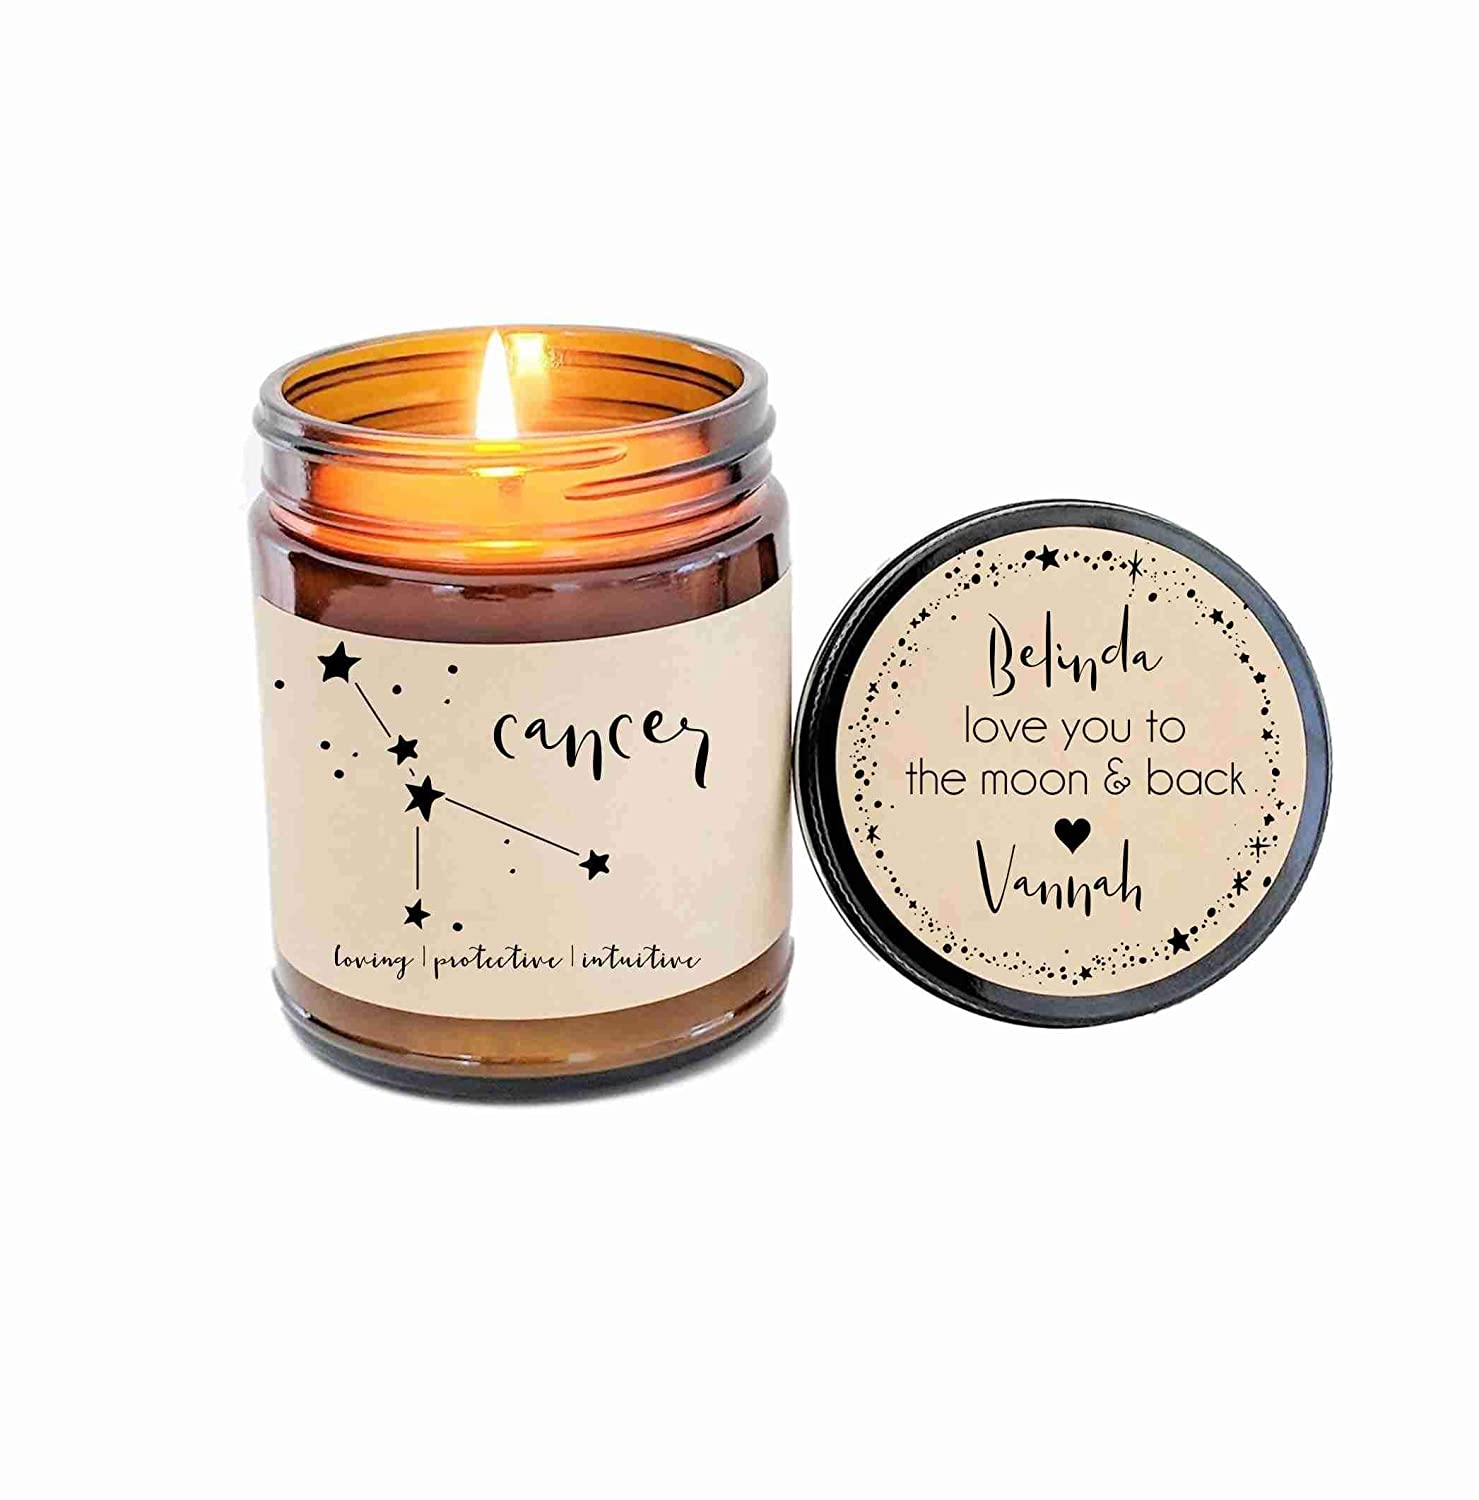 Cancer Luxury Zodiac Ranking TOP16 Candle Gift Gifts Birthday